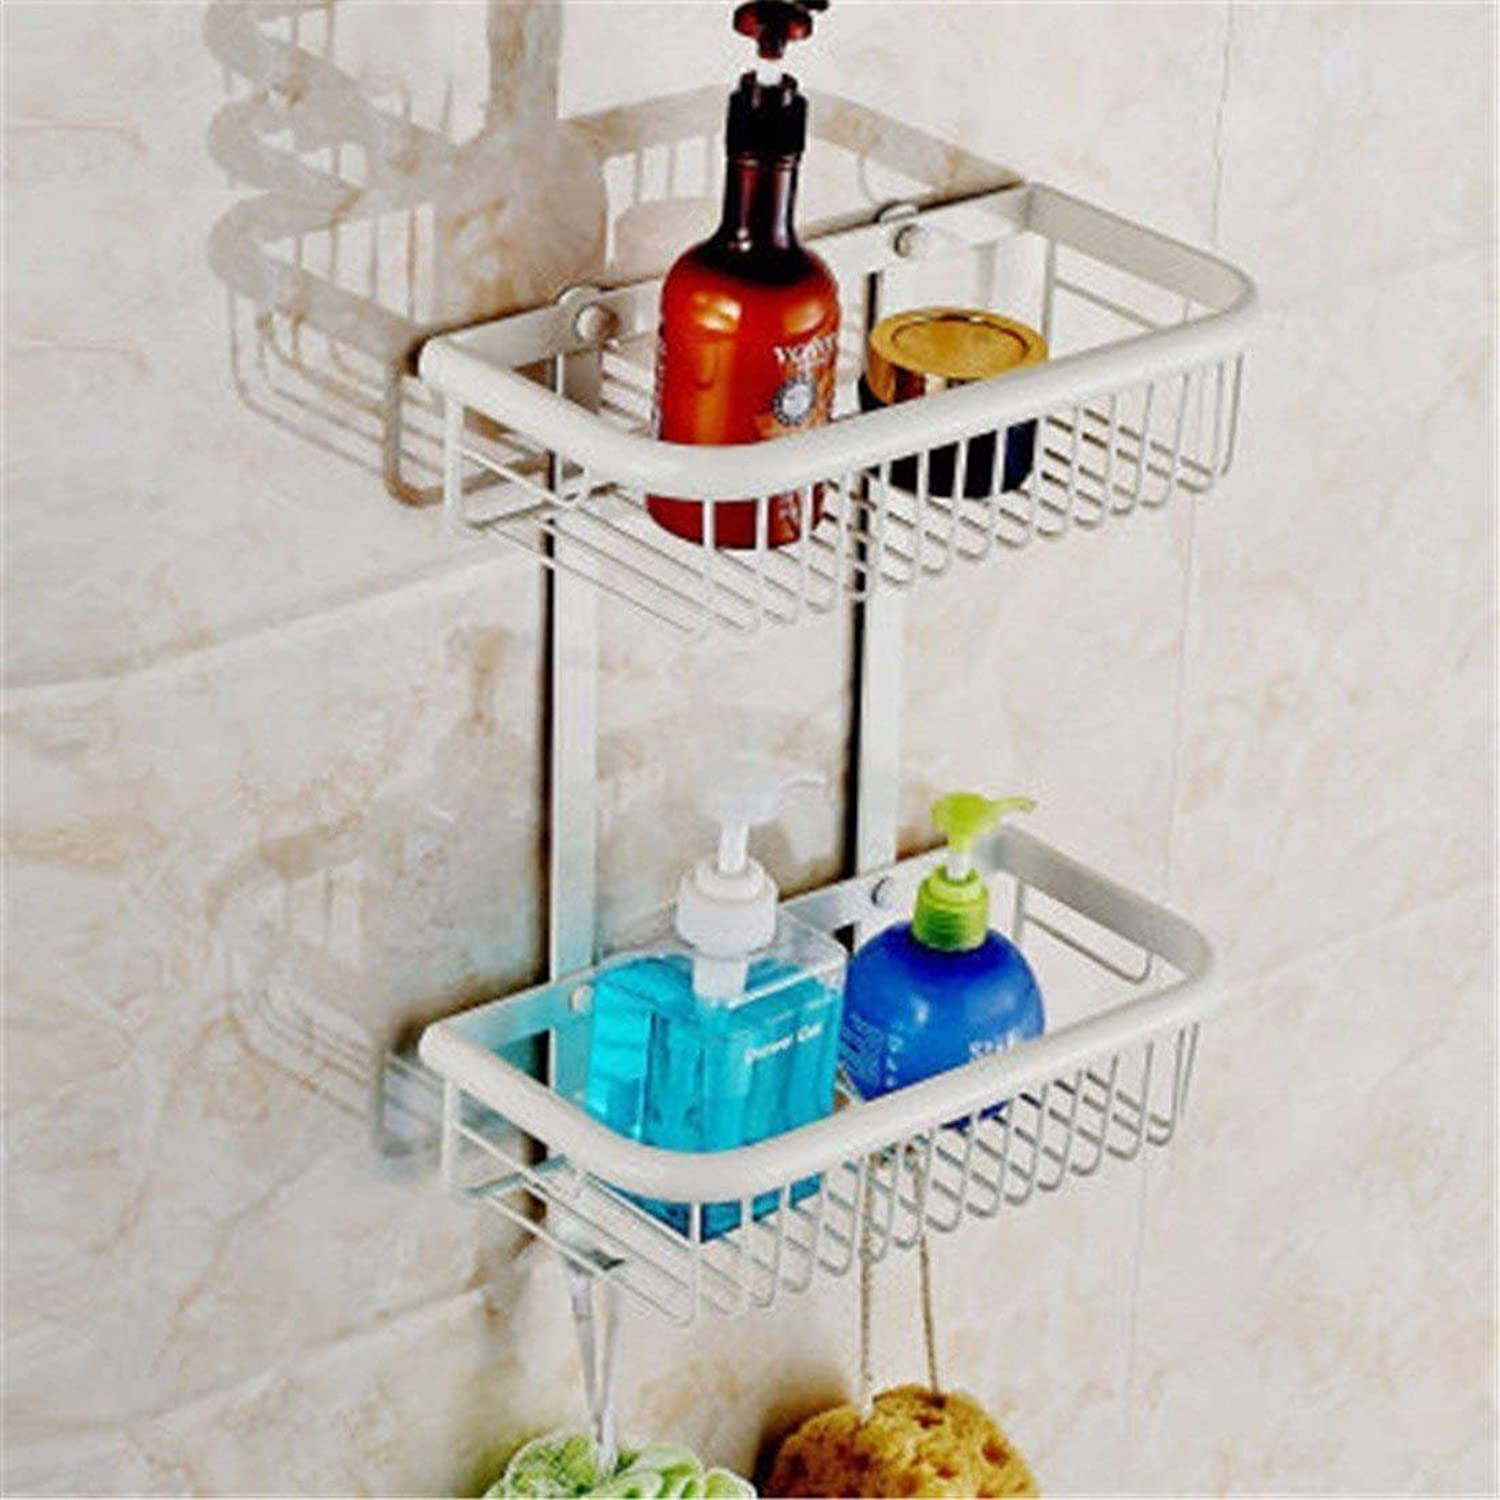 European Copper Bake White gold varnishes Bathroom Costume Coat Hanger Toilet Paper Rack Toilet Brush Frame,Place The Shopping Cart 2